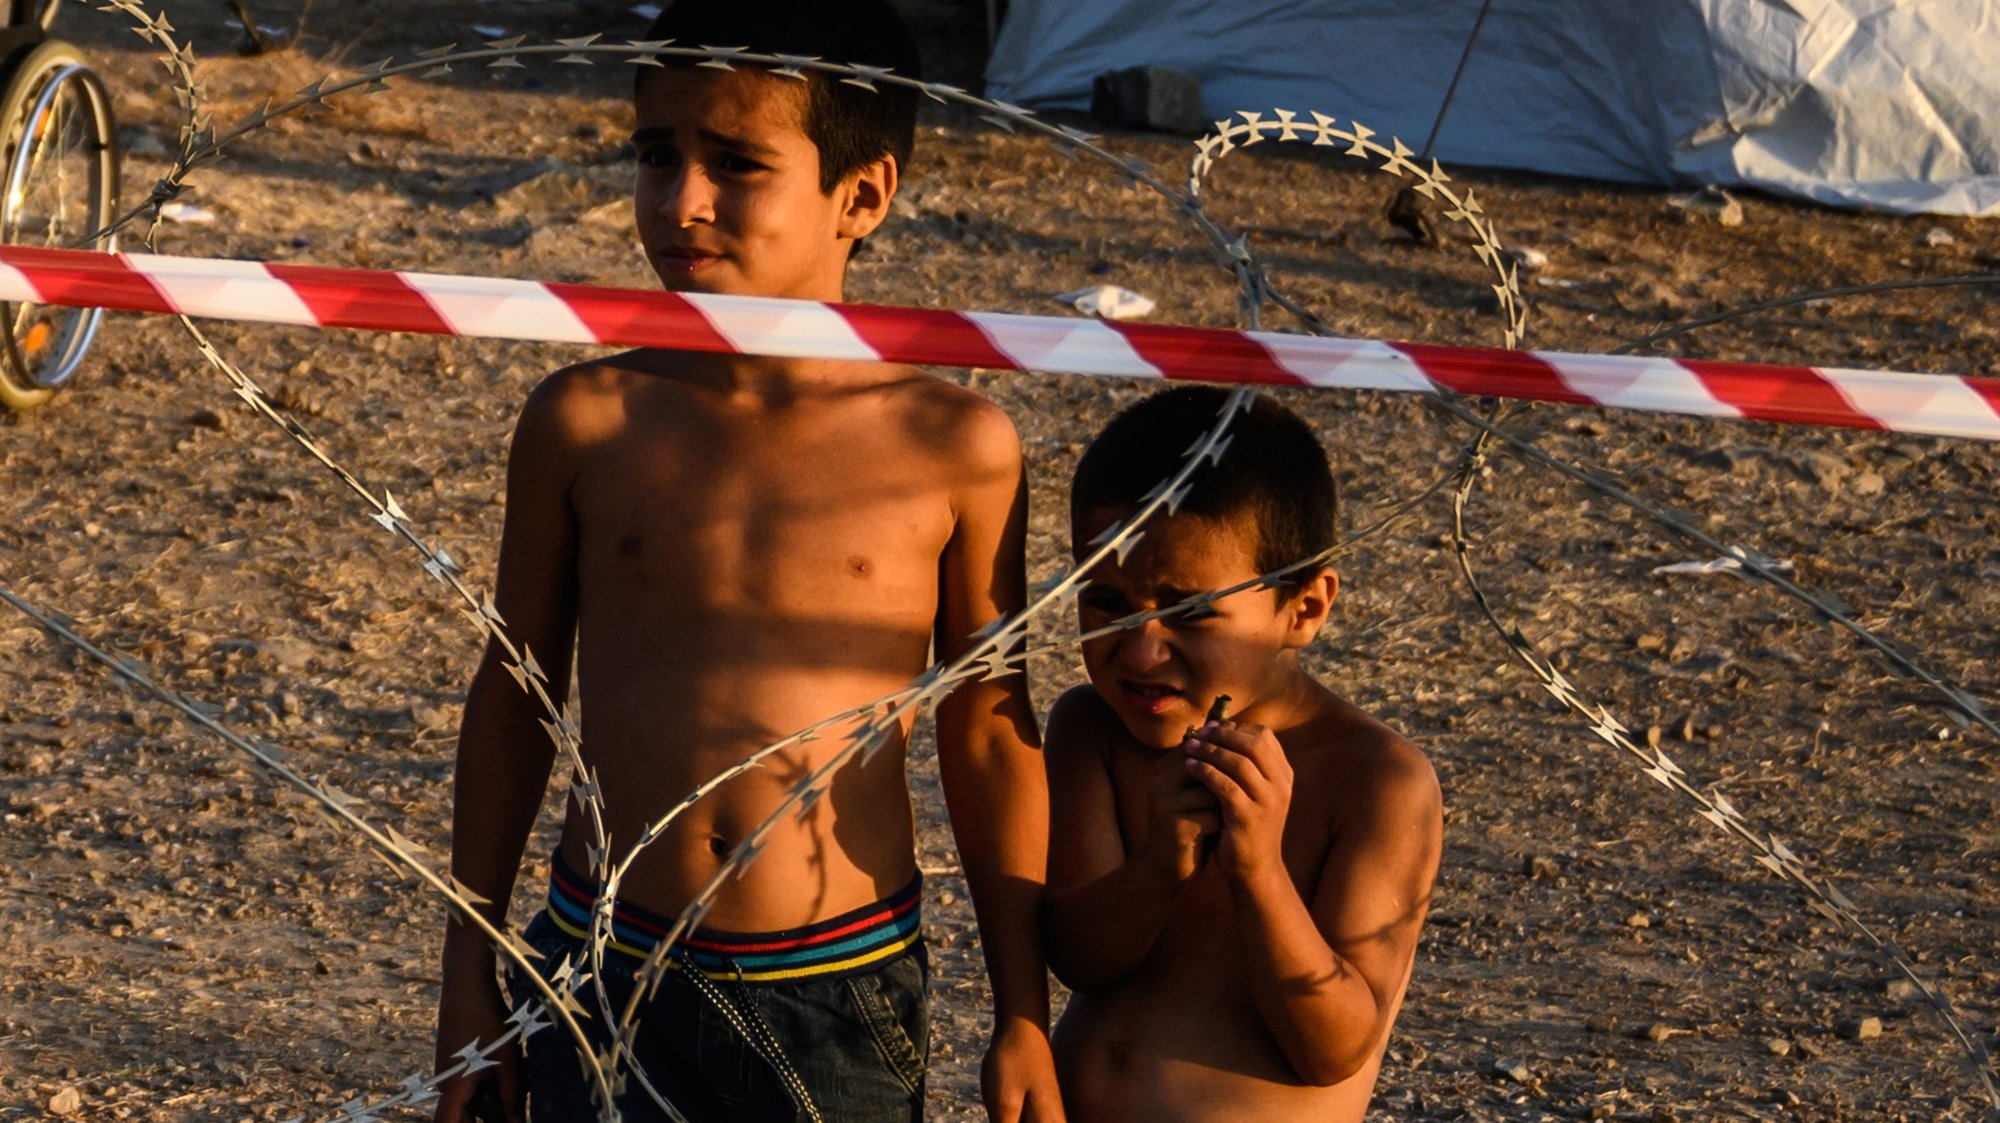 epa08682485 Two small boys stand behind razor wire at Kara Tepe camp on Lesbos island, Greece, 19 September 2020. Following the catastrophic fires at Moria on September 8 and 9, a total of 9,000 people were rehoused at the hotspot of Kara Tepe, south of Mytilini. All of them have been identified and their asylum applications are in process. Of them, 213 were found positive to the novel coronavirus and have been quarantined at separate quarters in the hotspot.  EPA/VANGELIS PAPANTONIS